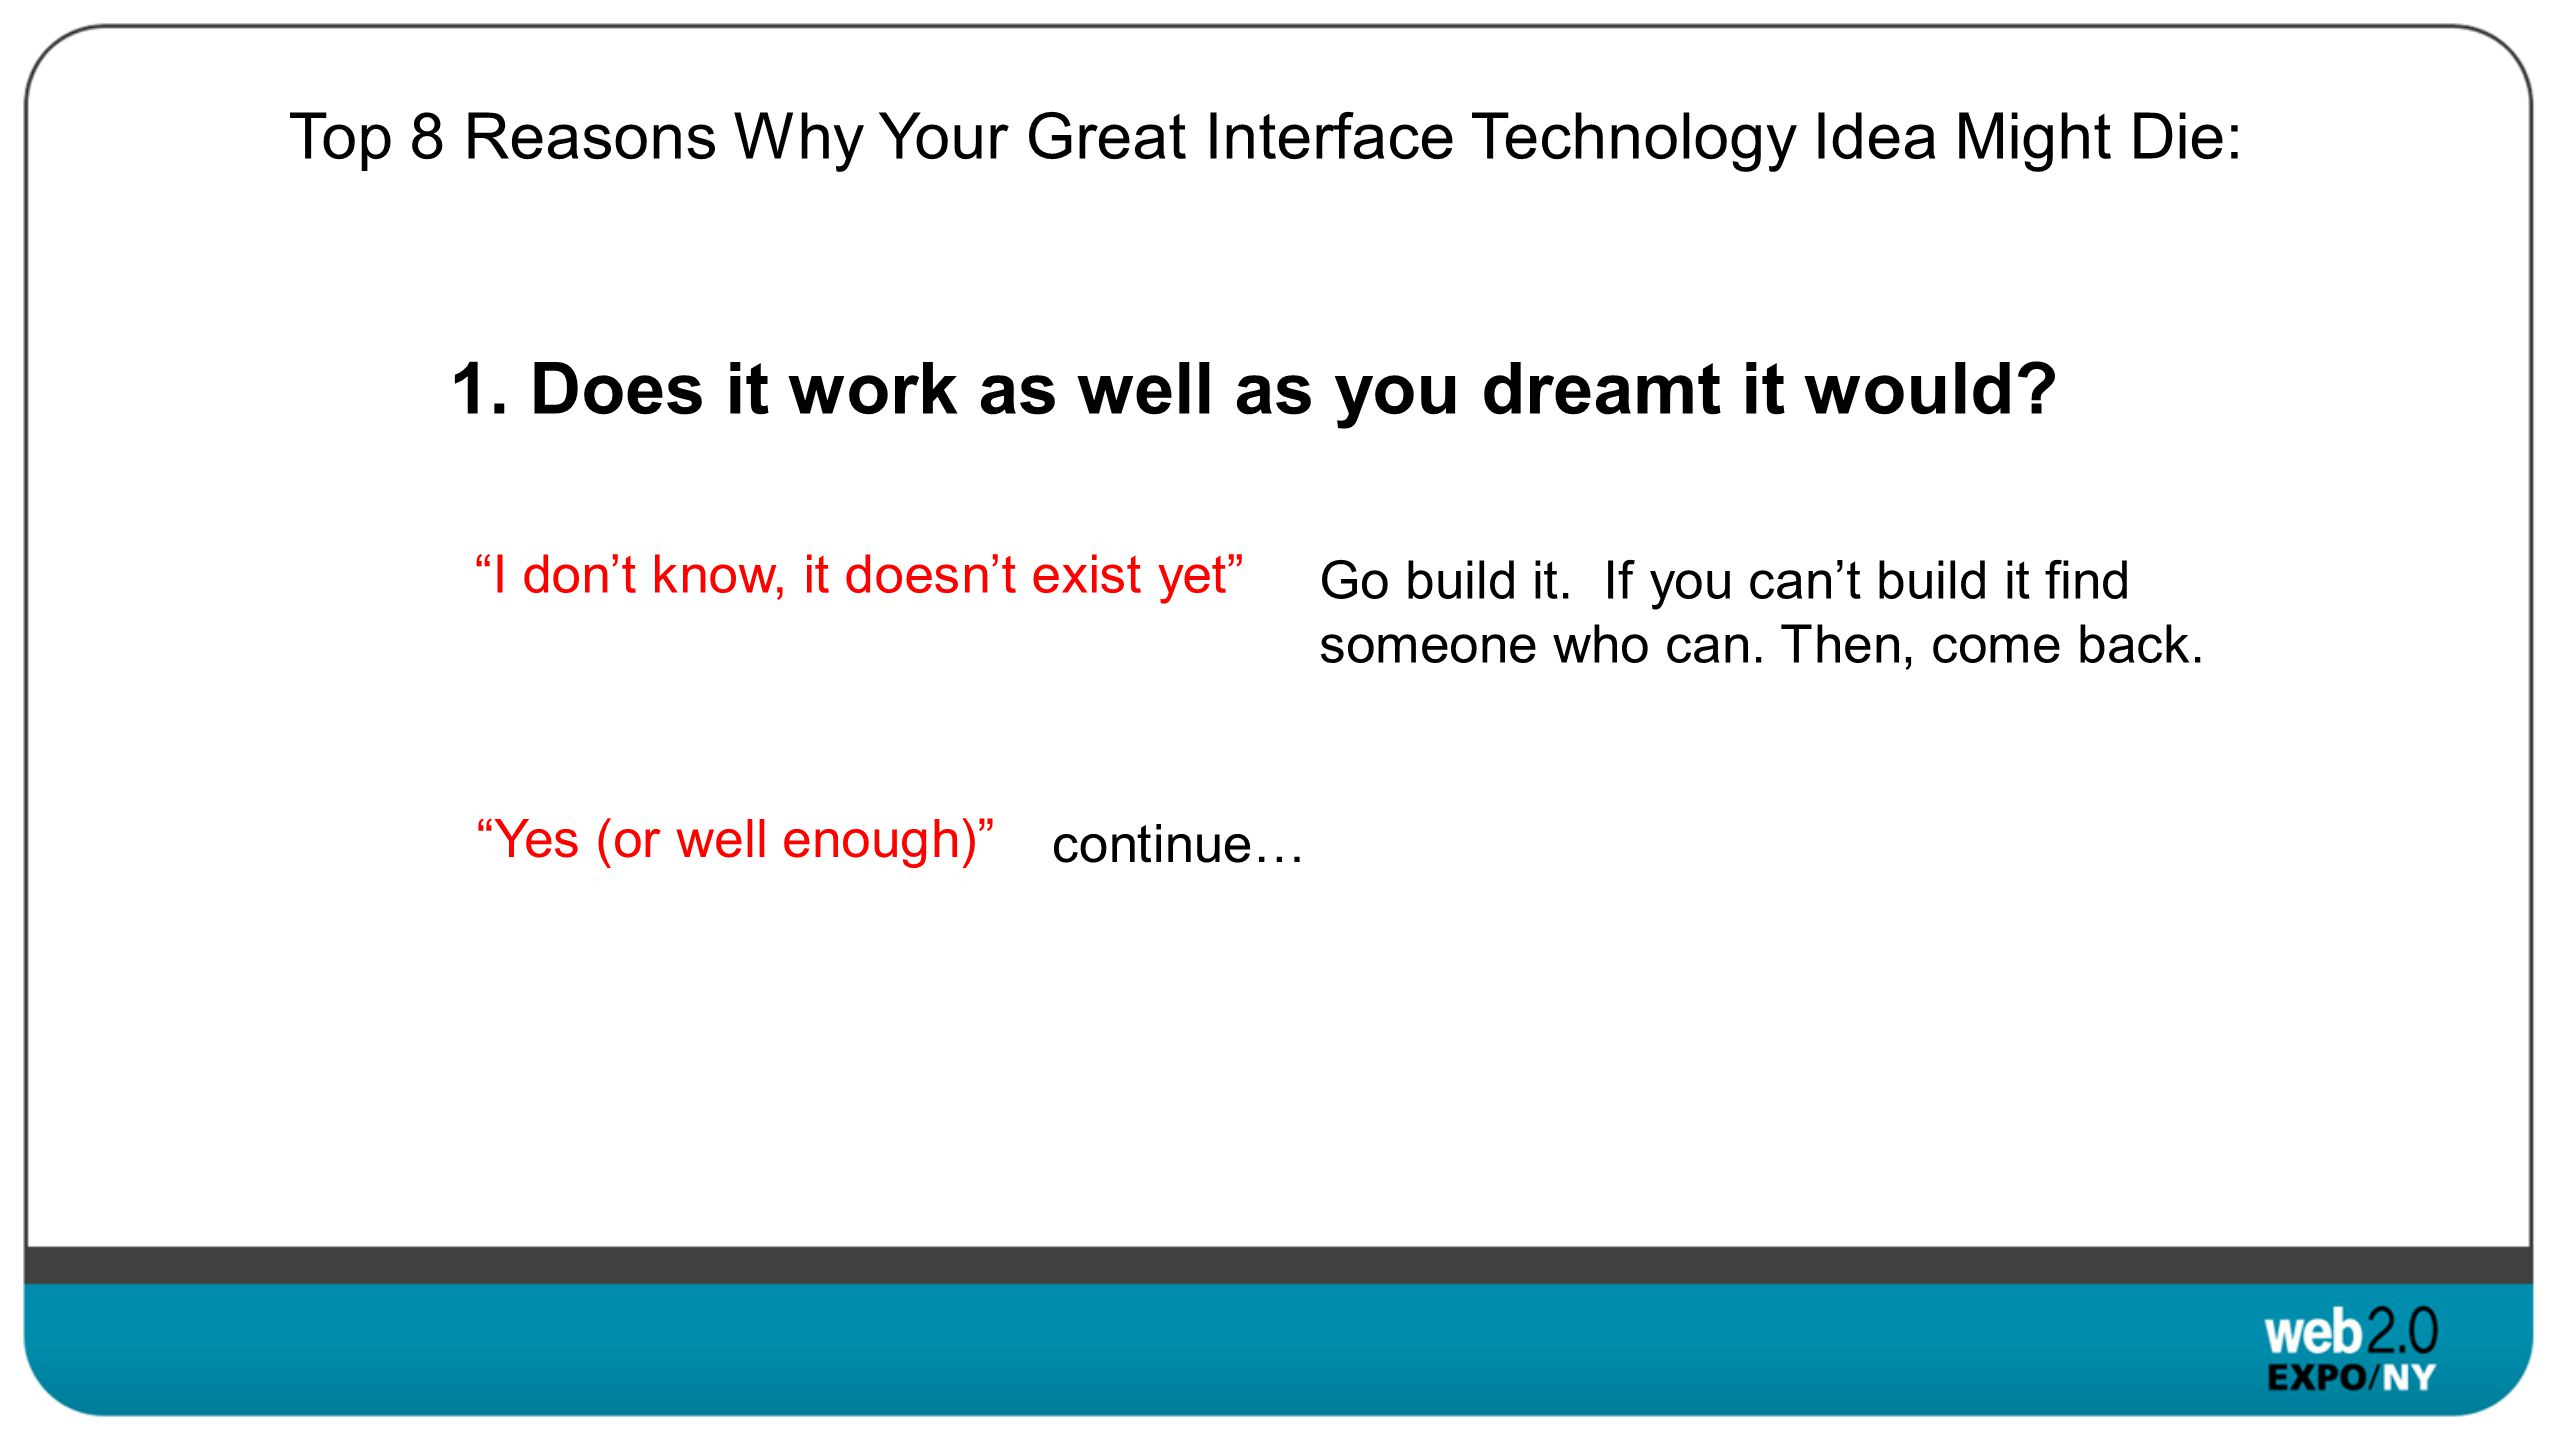 Top 8 Reasons Why Your Great Interface Technology Idea Might Die: